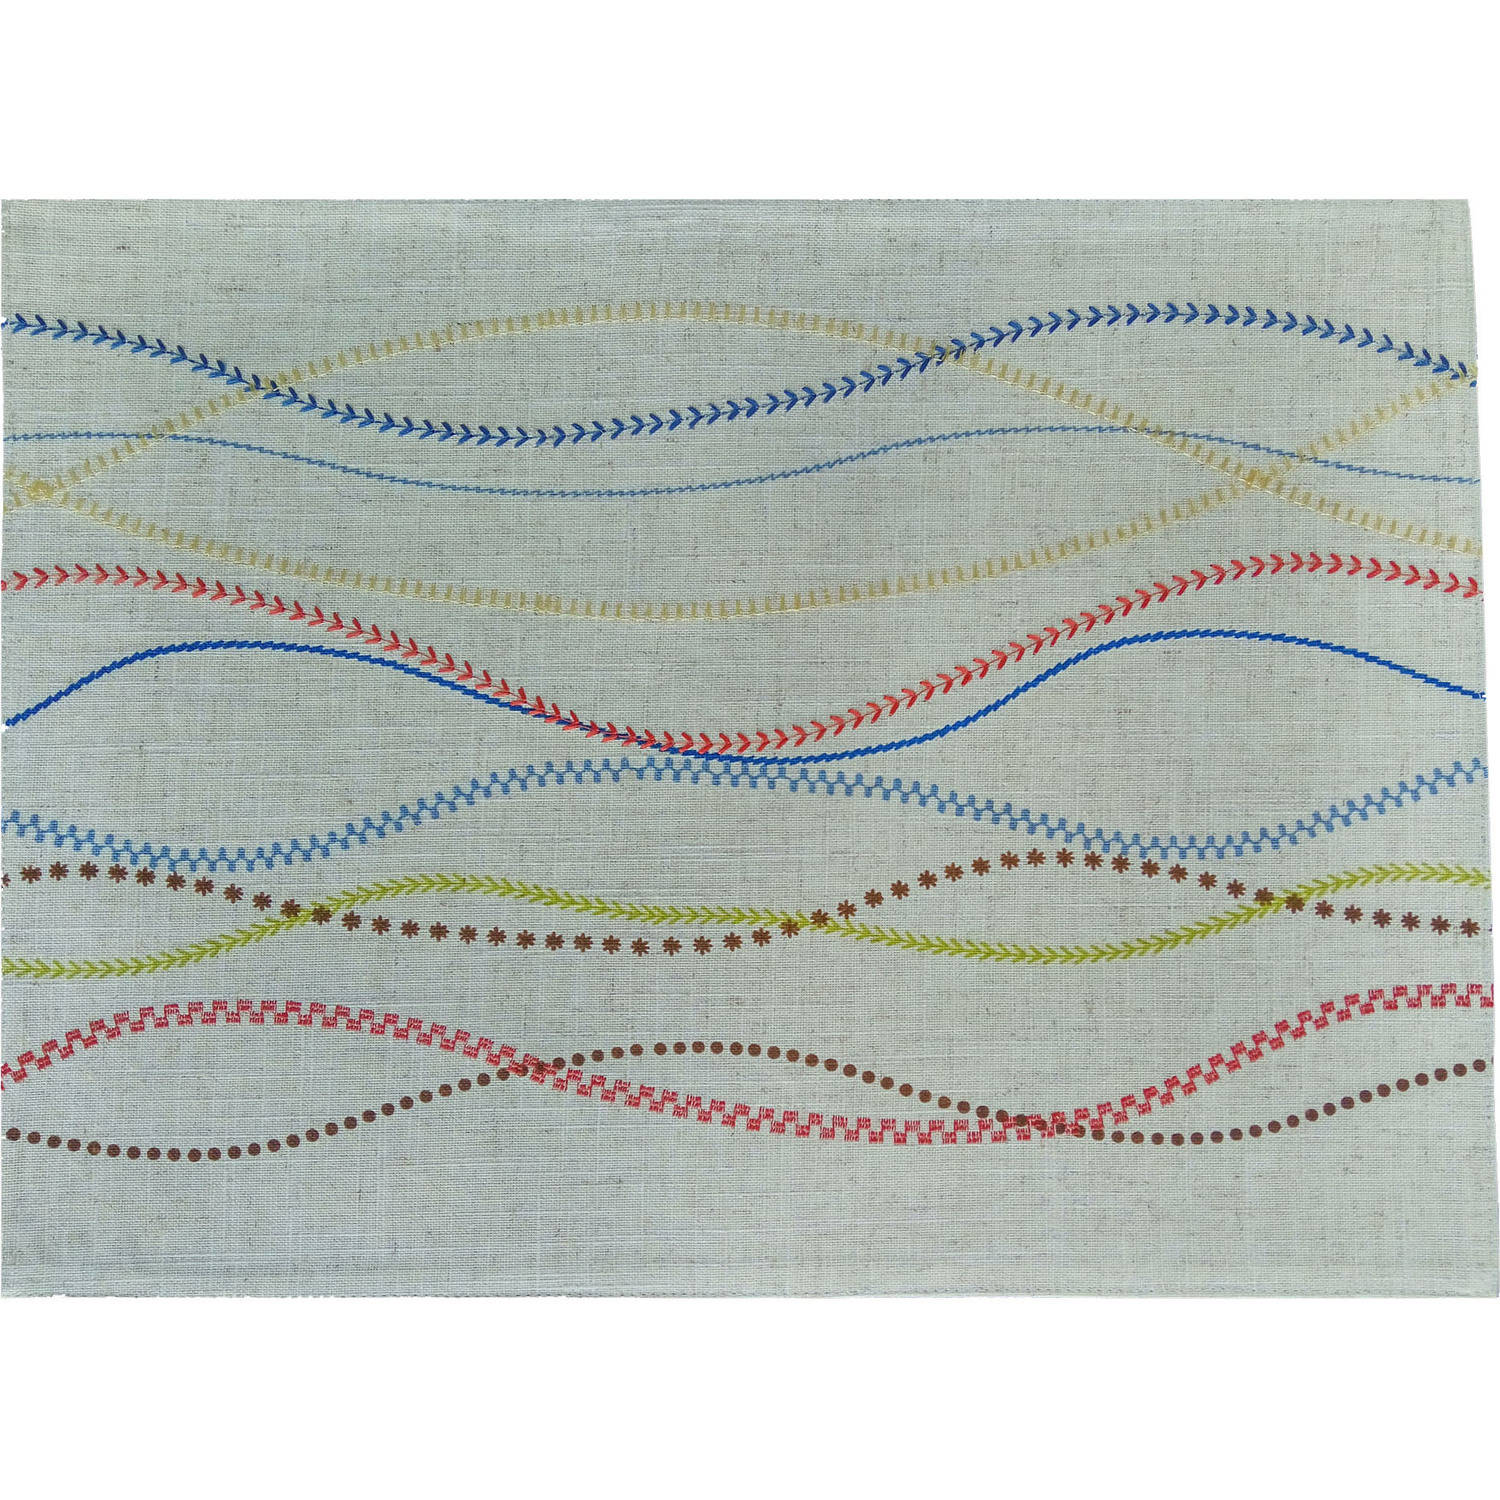 Better Homes and Gardens Embroidered 4-Piece Placemat, Ivory Multi-Color